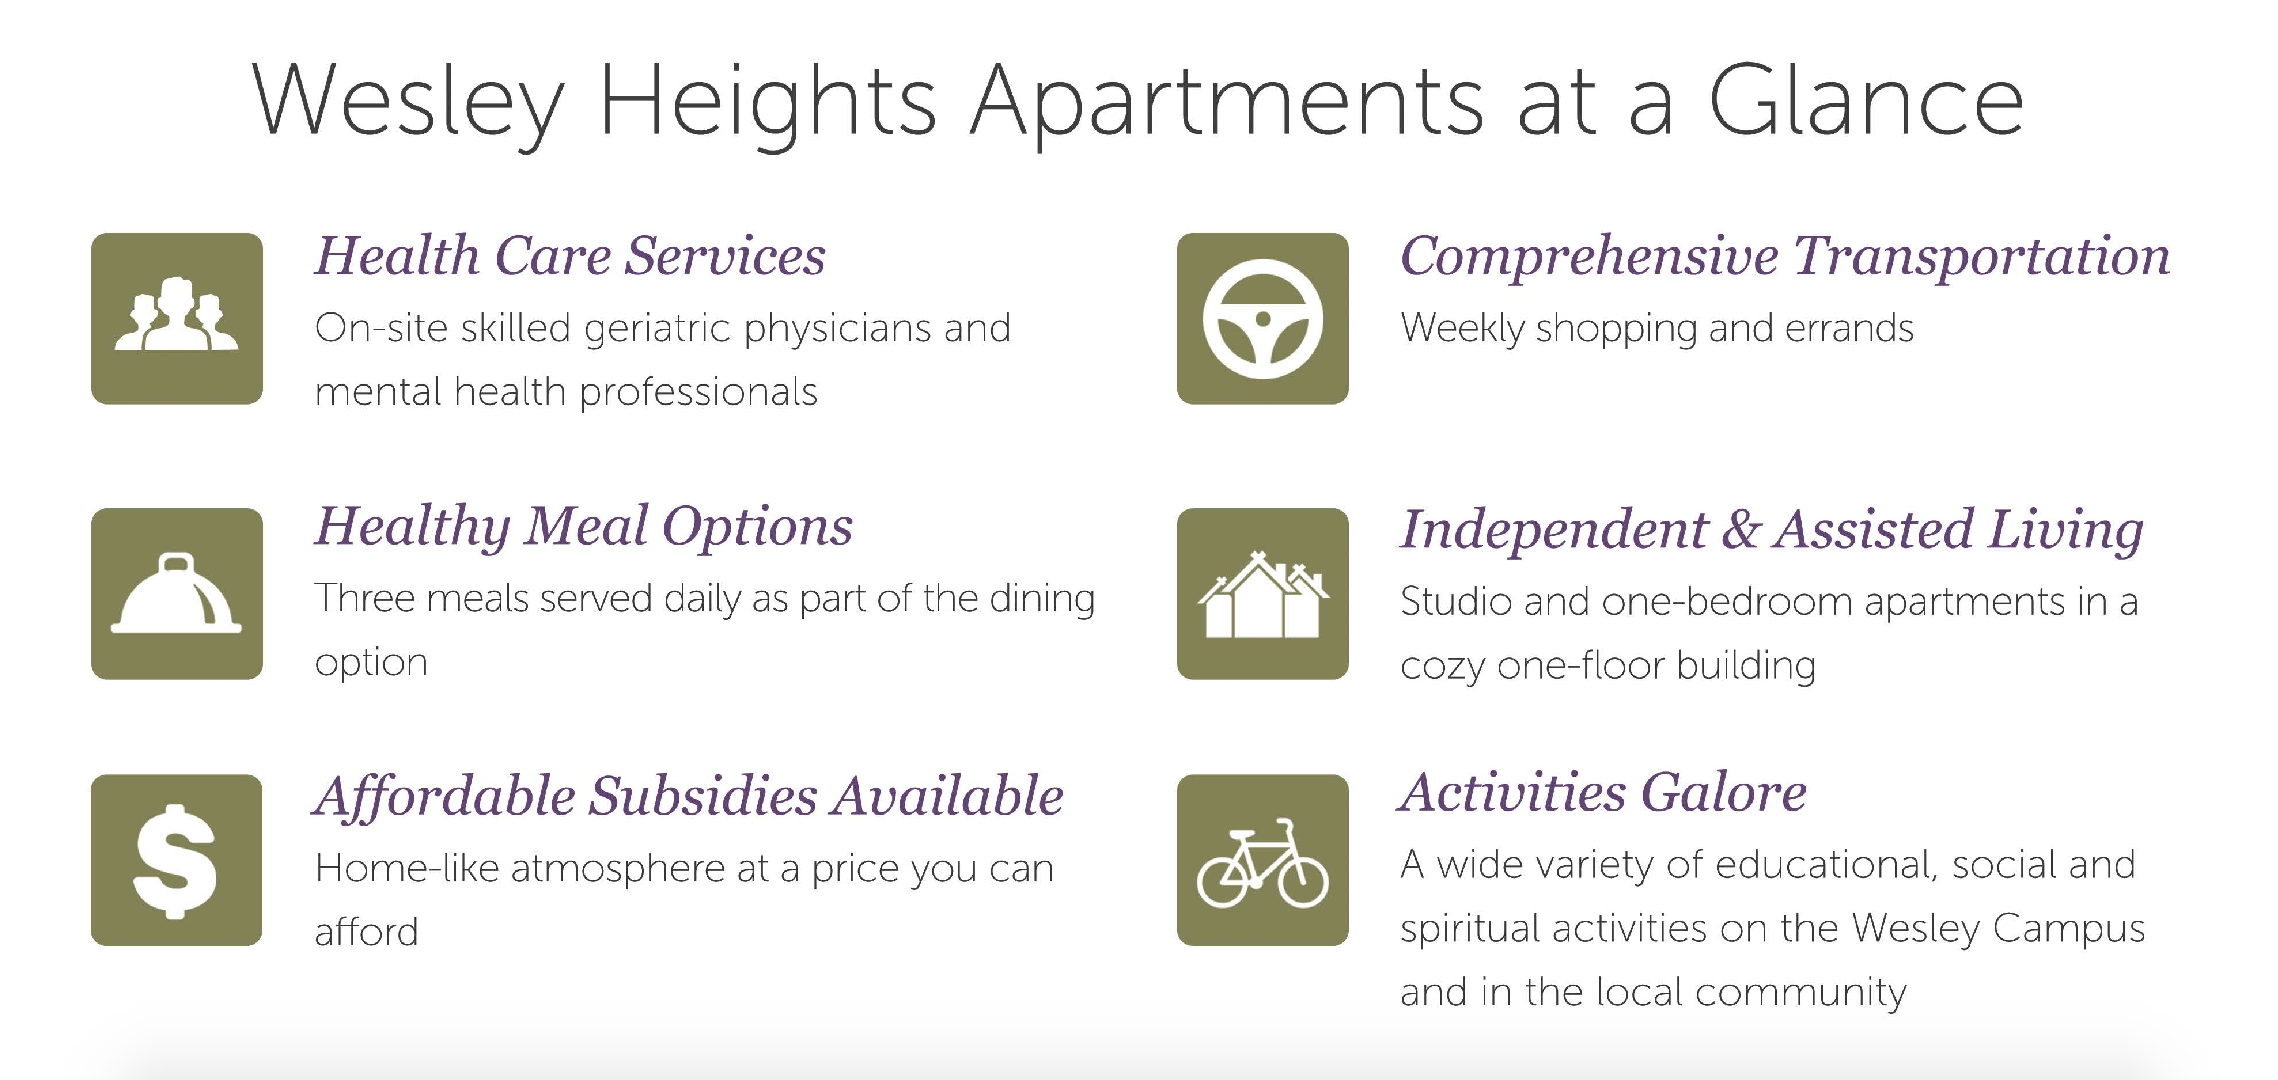 Connecticut Assisted Living Apartments